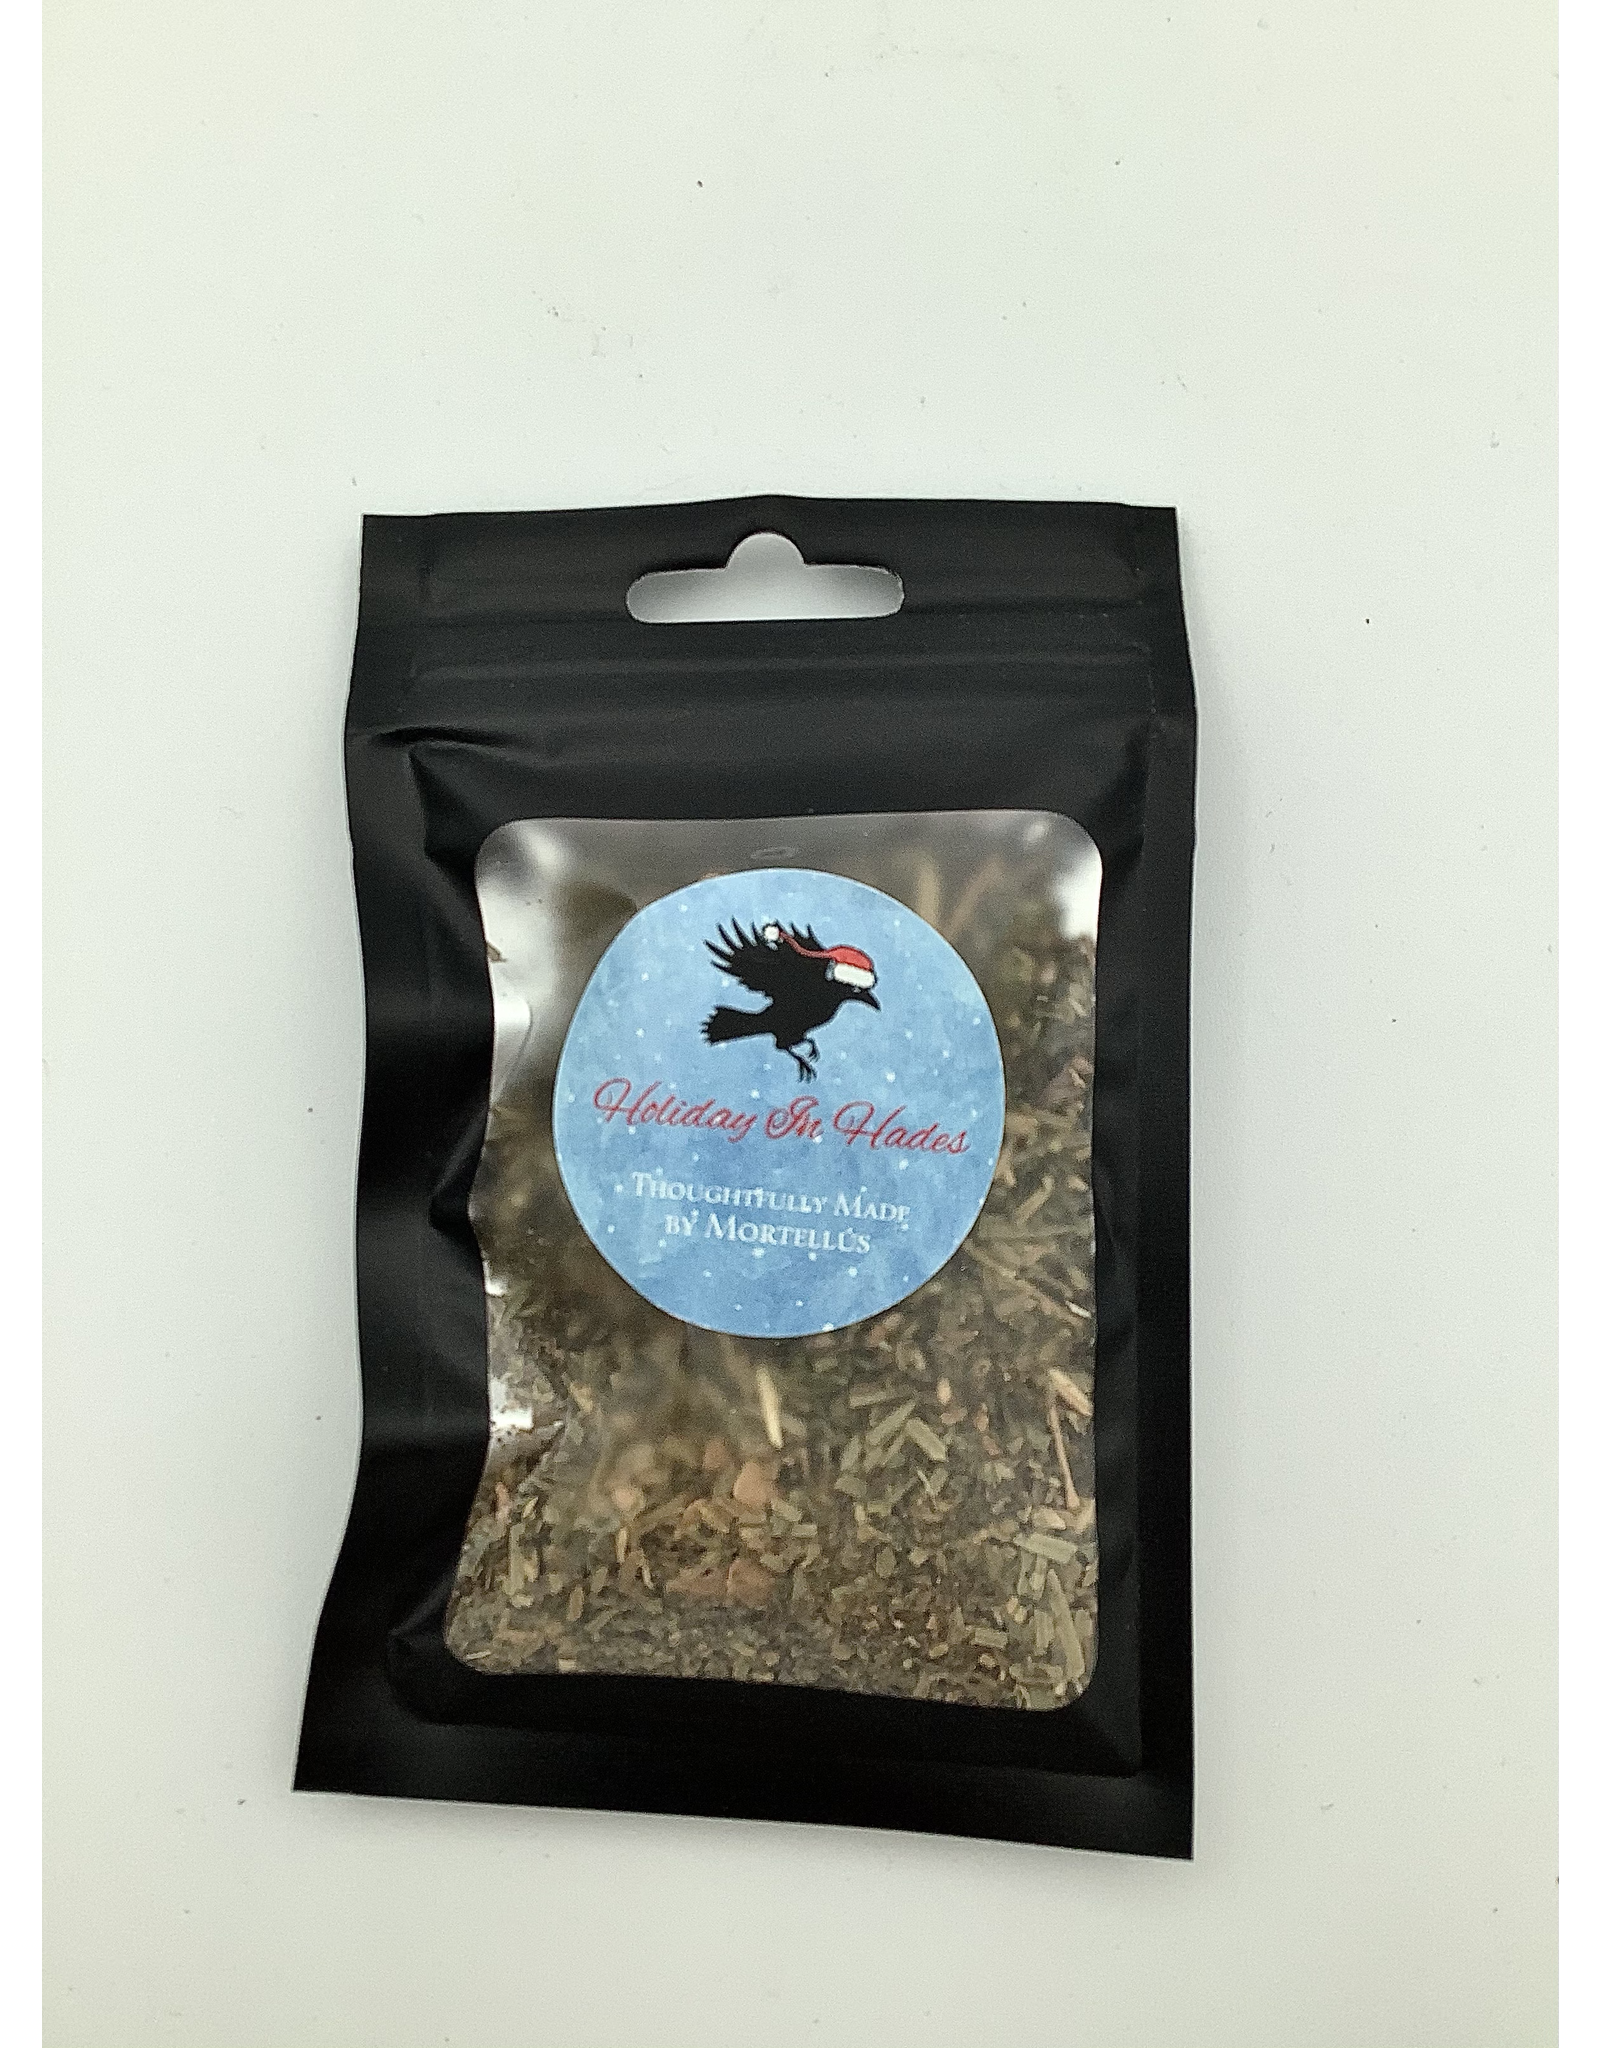 Crow and The Dead Holiday in Hades Incense